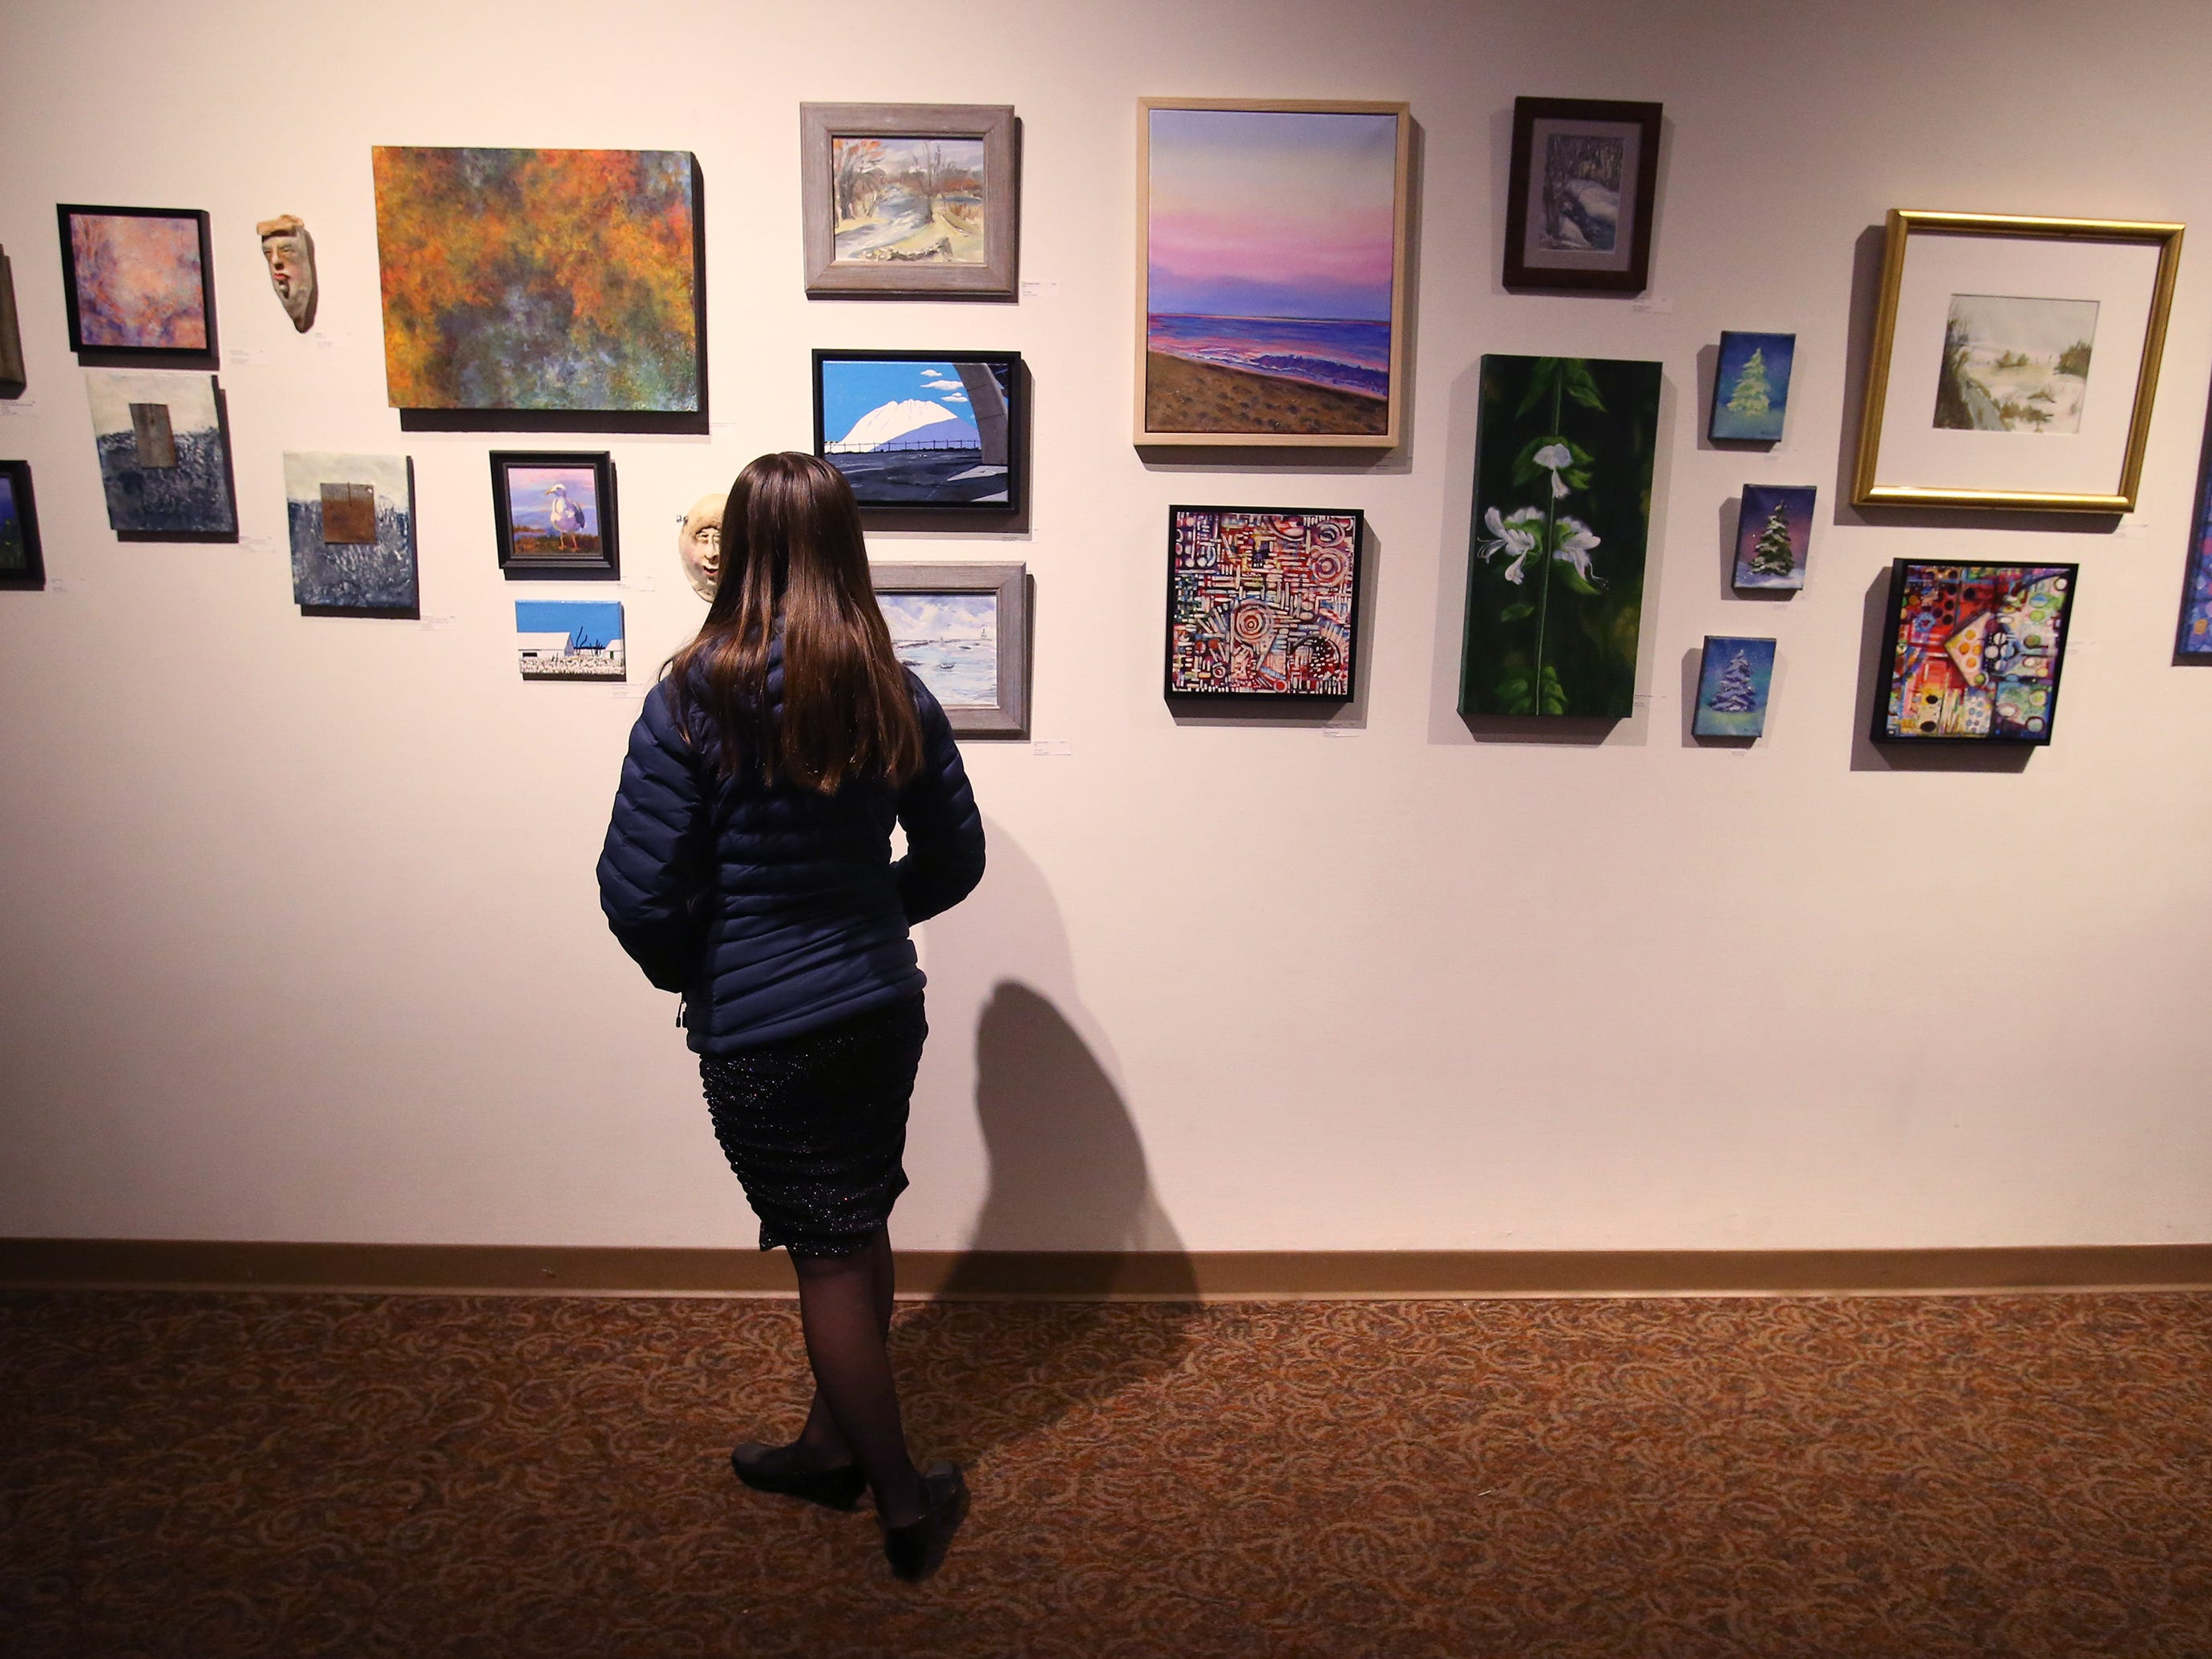 A guest examines the artwork on display in the Cedarburg Cultural Center during a First Fridays event on Jan. 4.